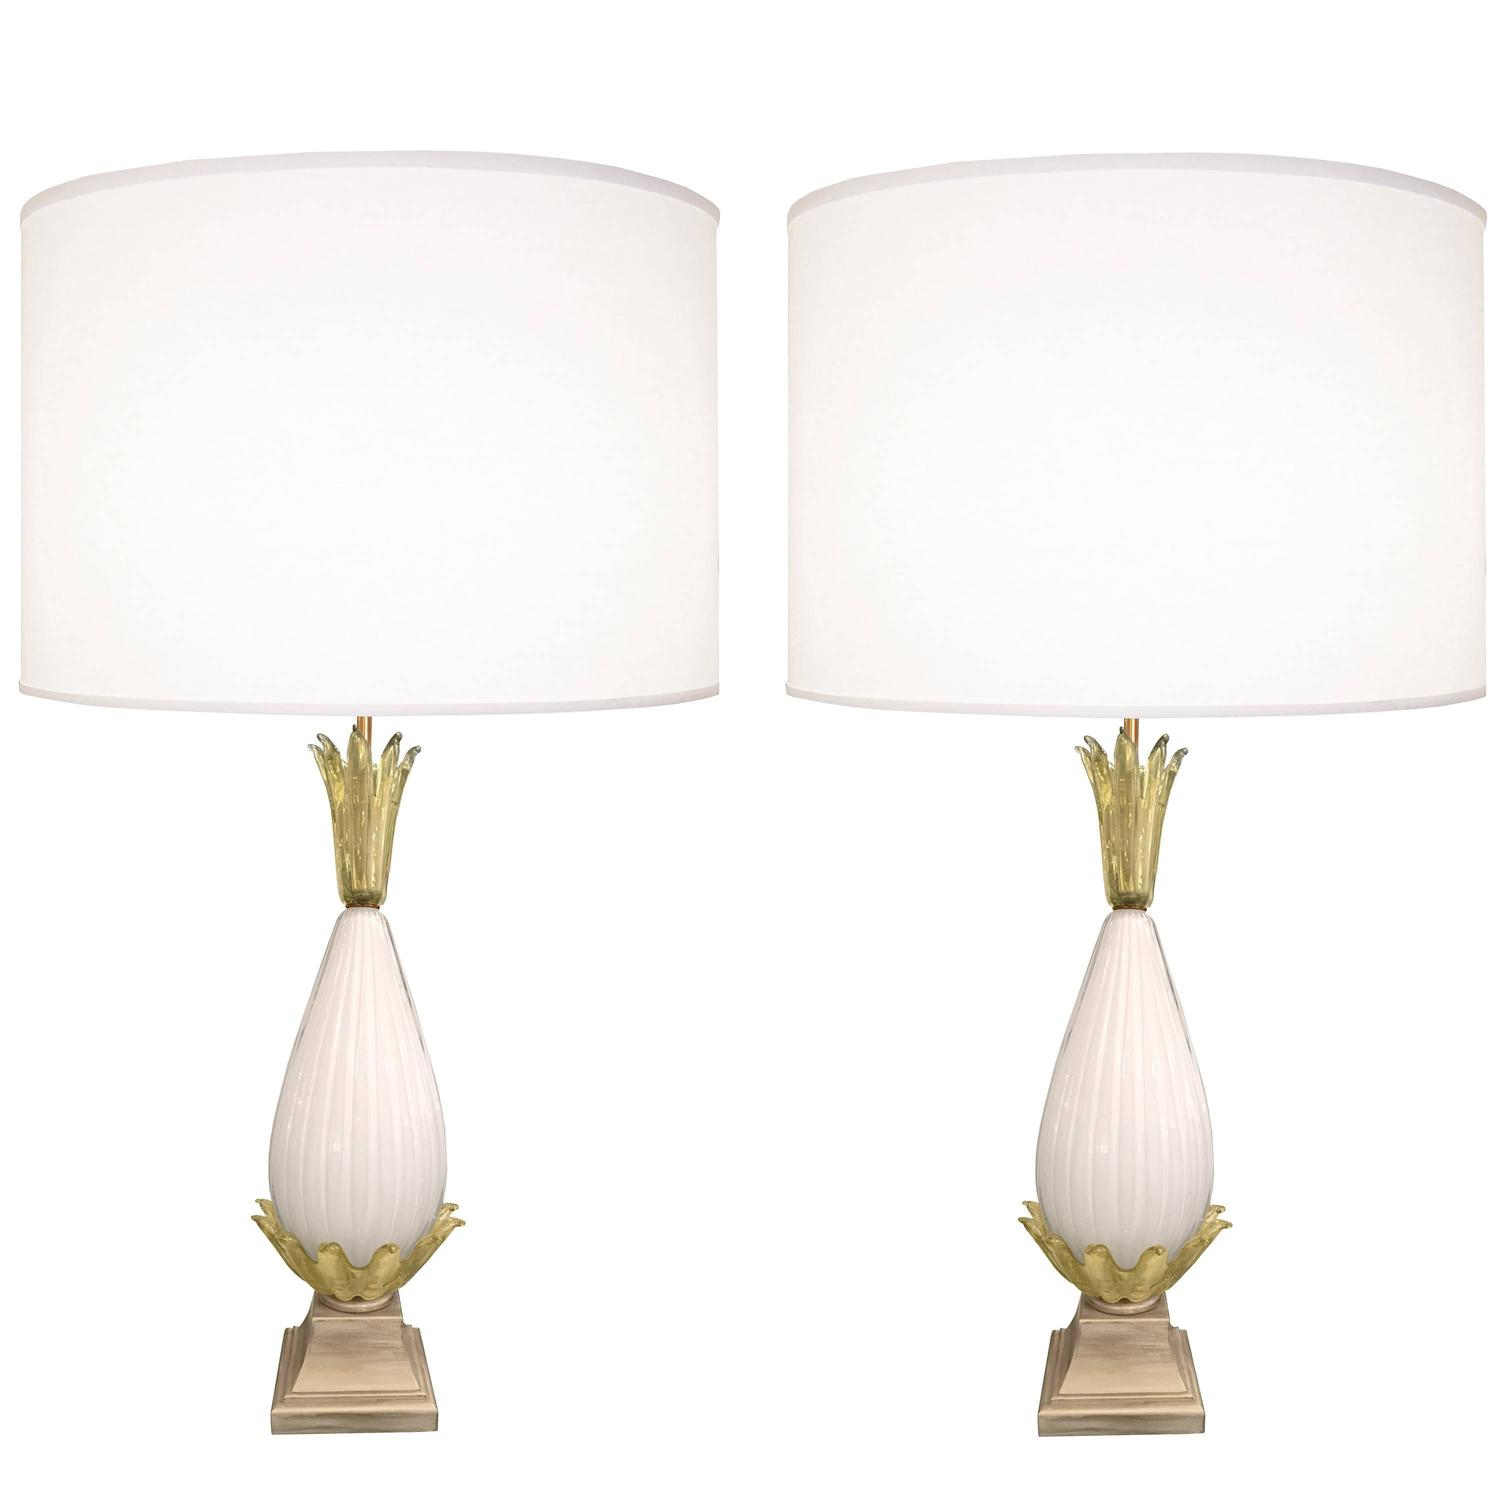 pair of fluted murano glass lamps for sale at 1stdibs. Black Bedroom Furniture Sets. Home Design Ideas